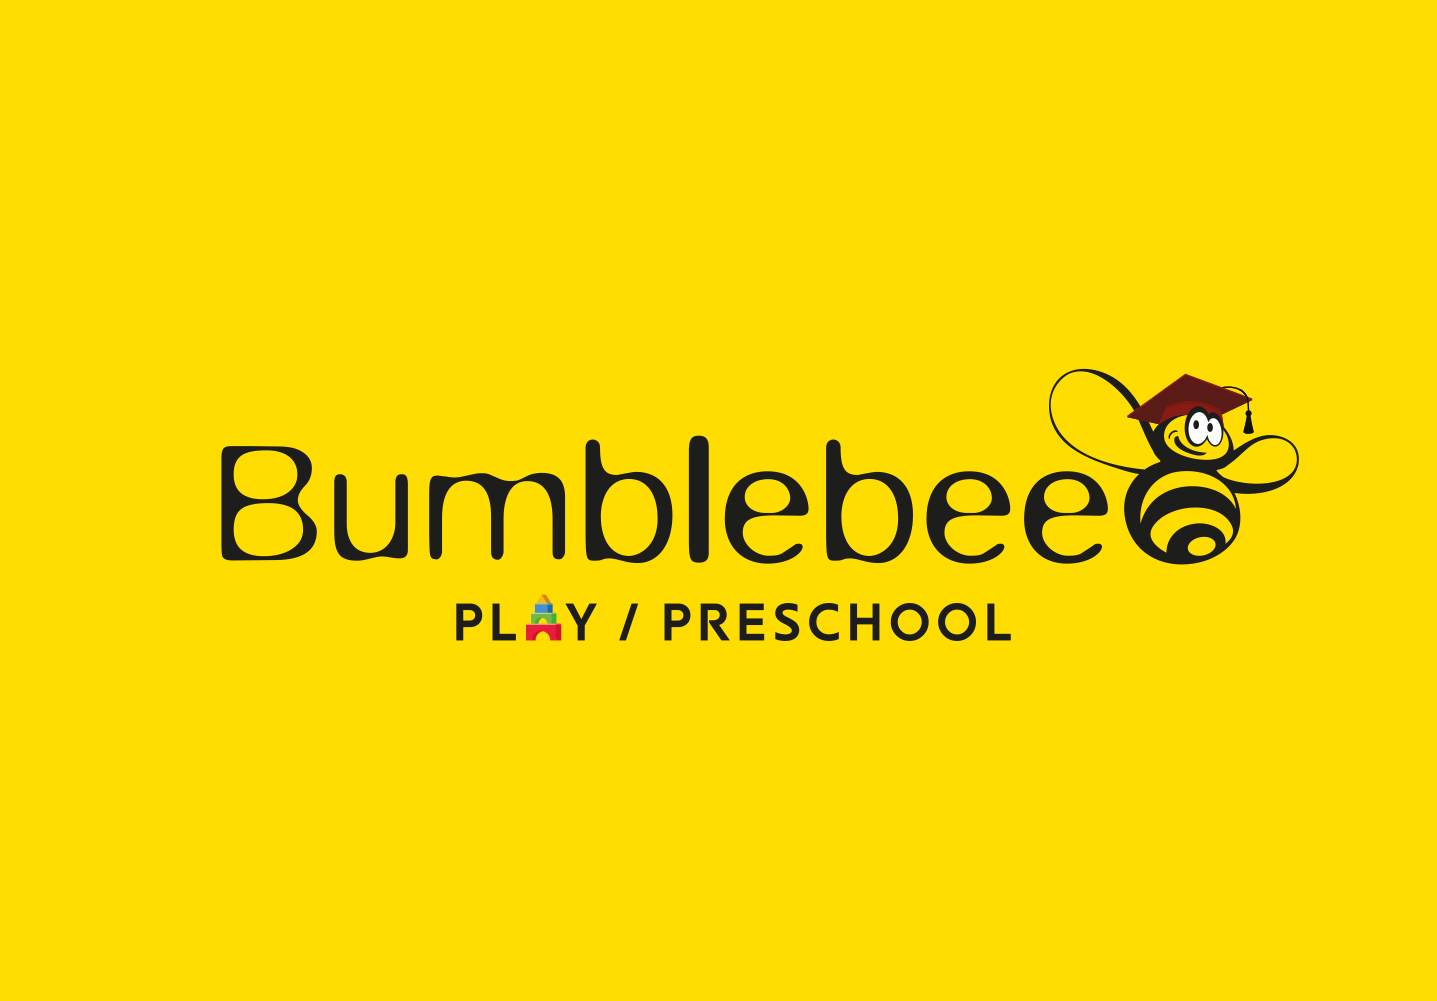 Bumblebee Play/Preschool